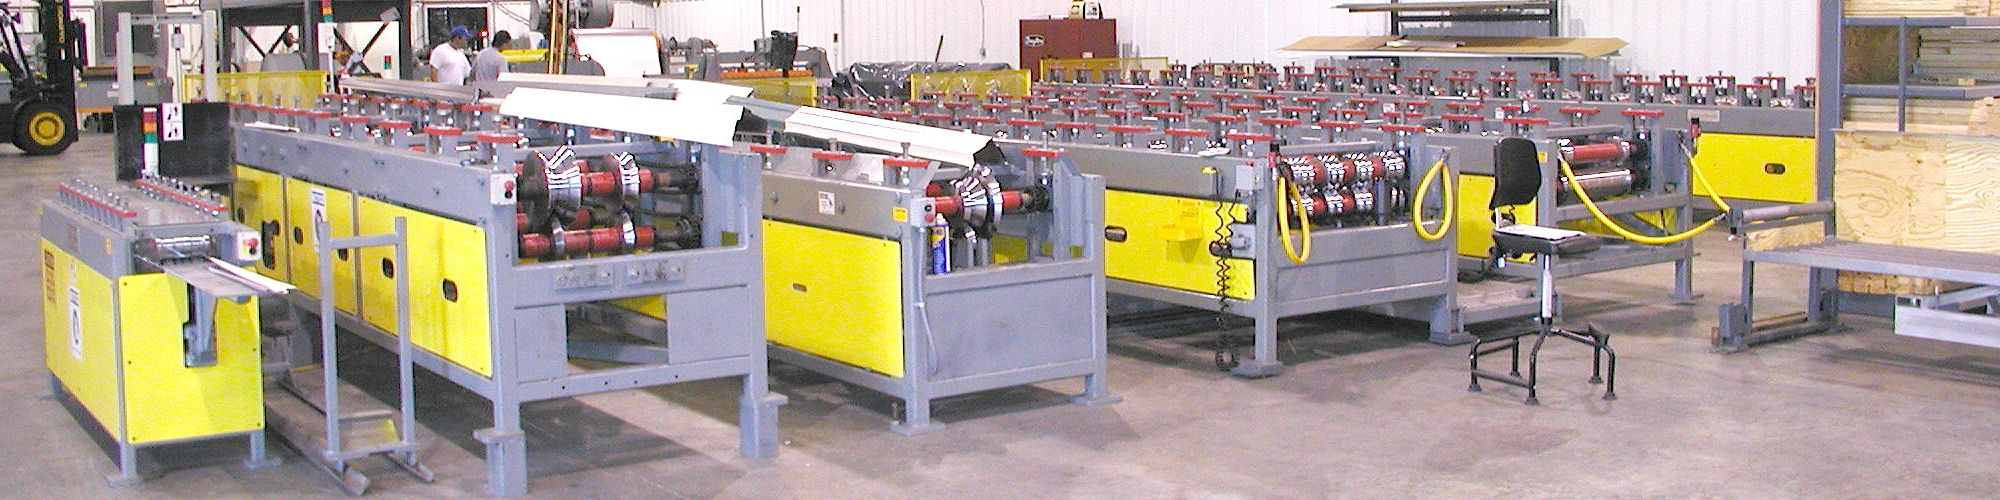 rollformers-machines-manufacturing